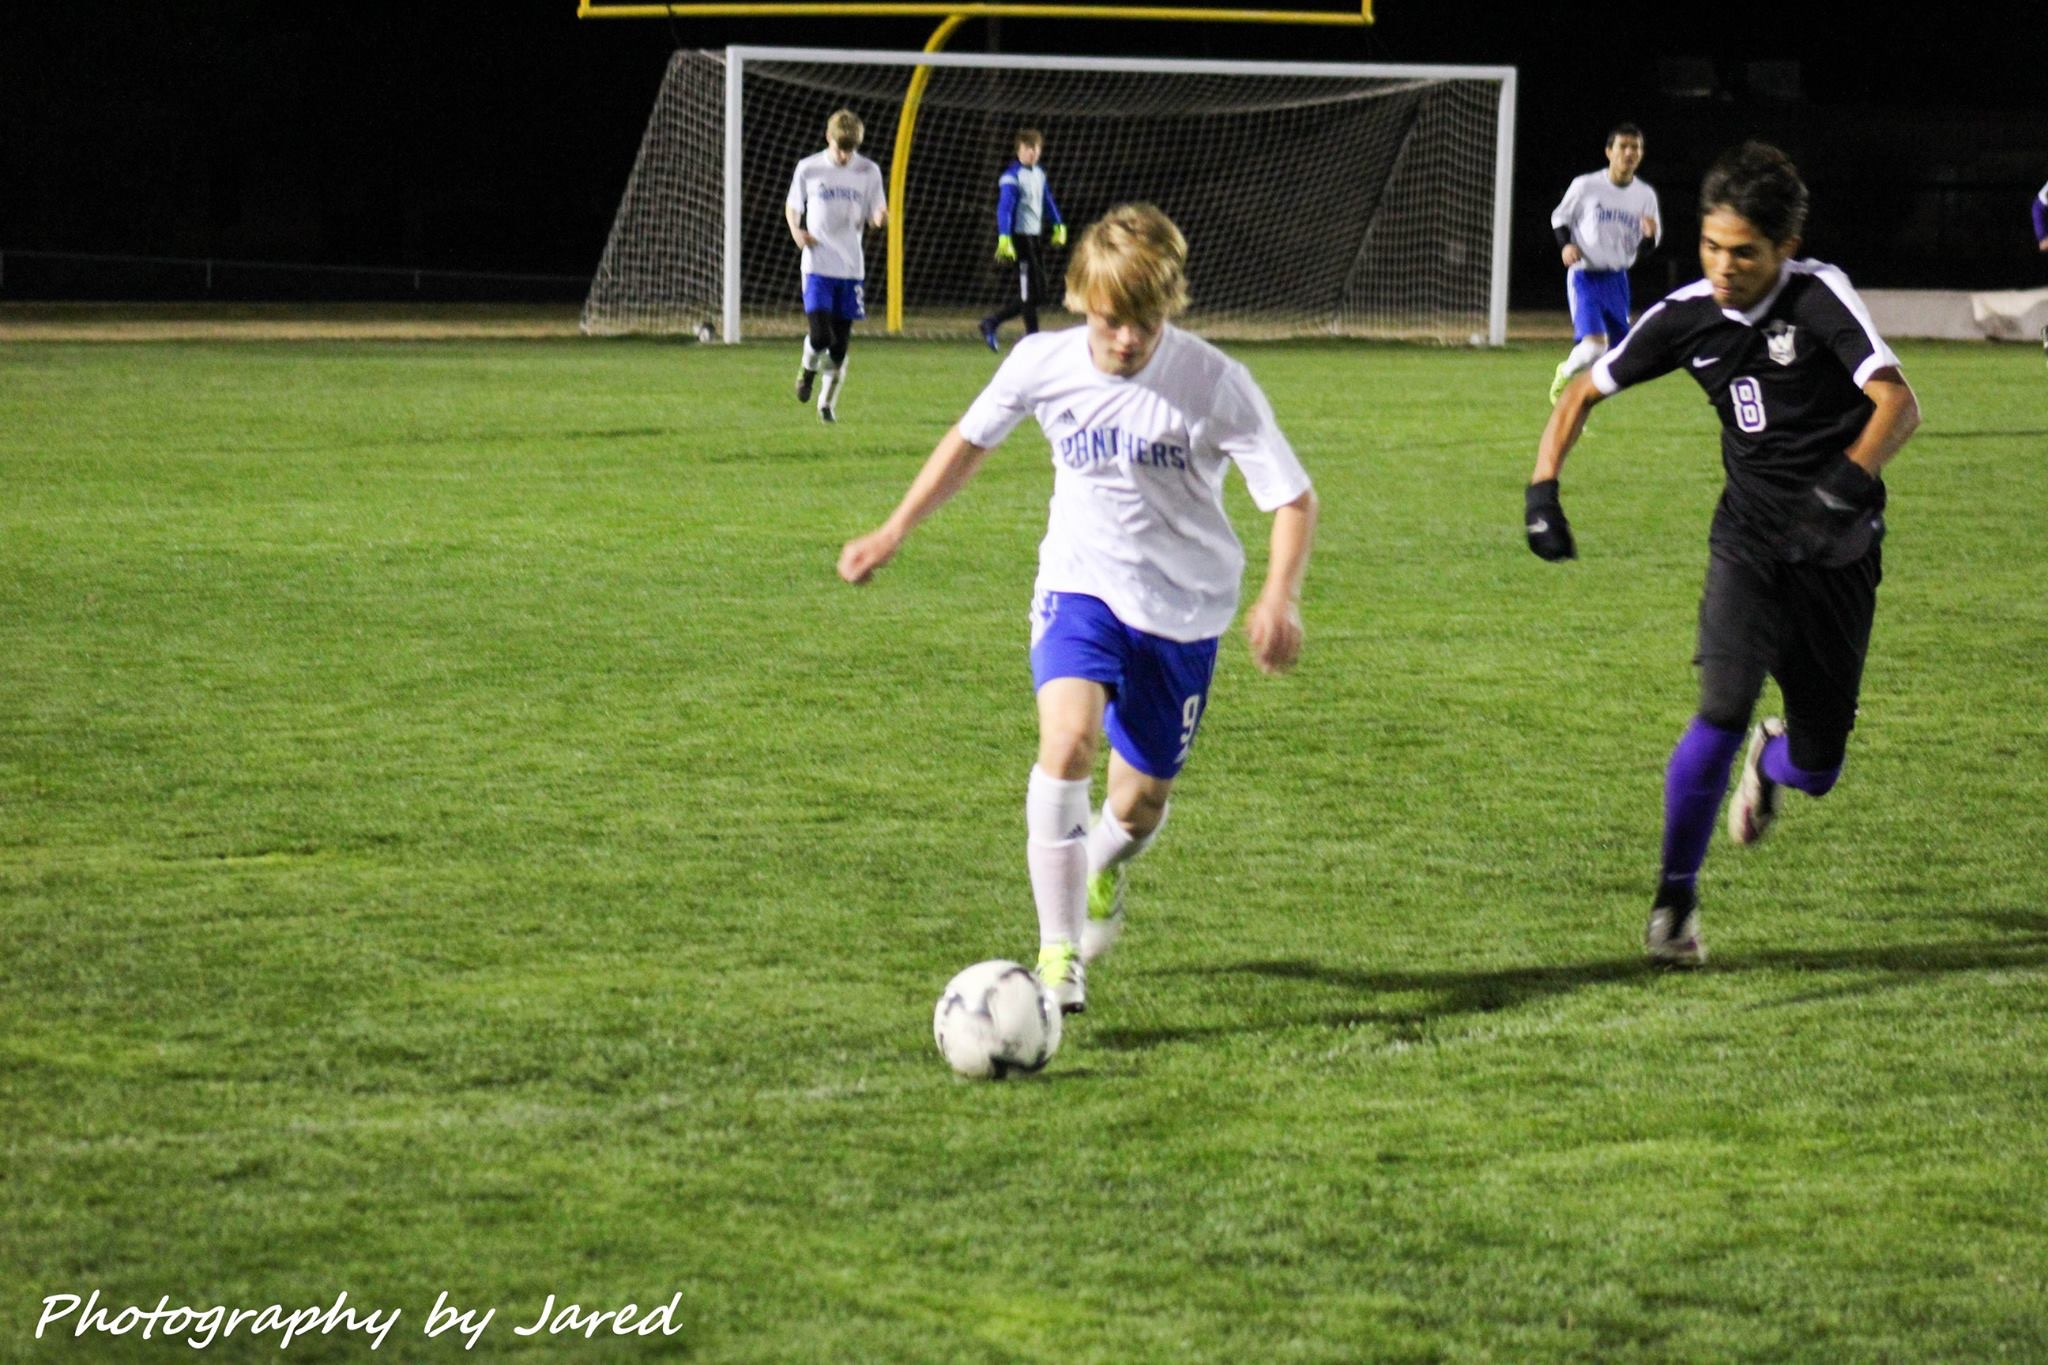 Matthew Meredith with the ball